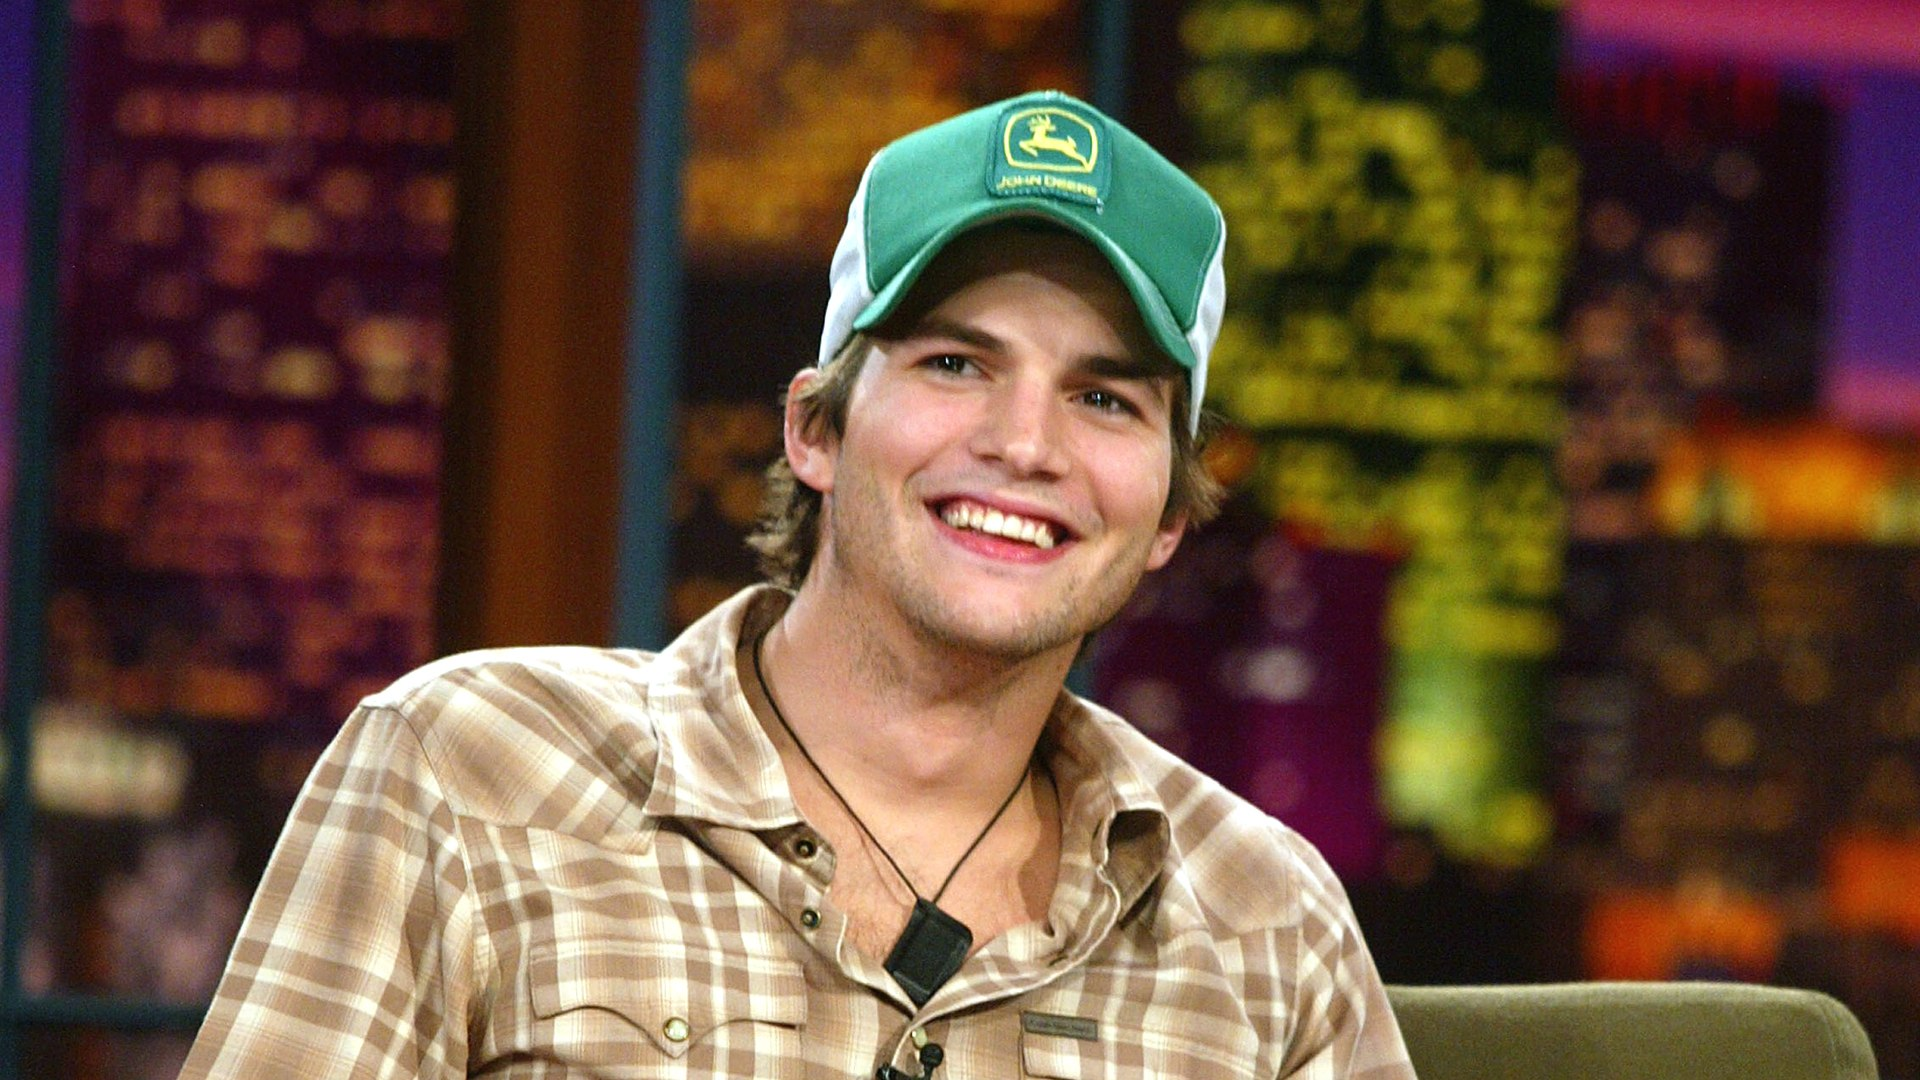 Image: Ashton Kutcher Appears on The Tonight Show with Jay Leno